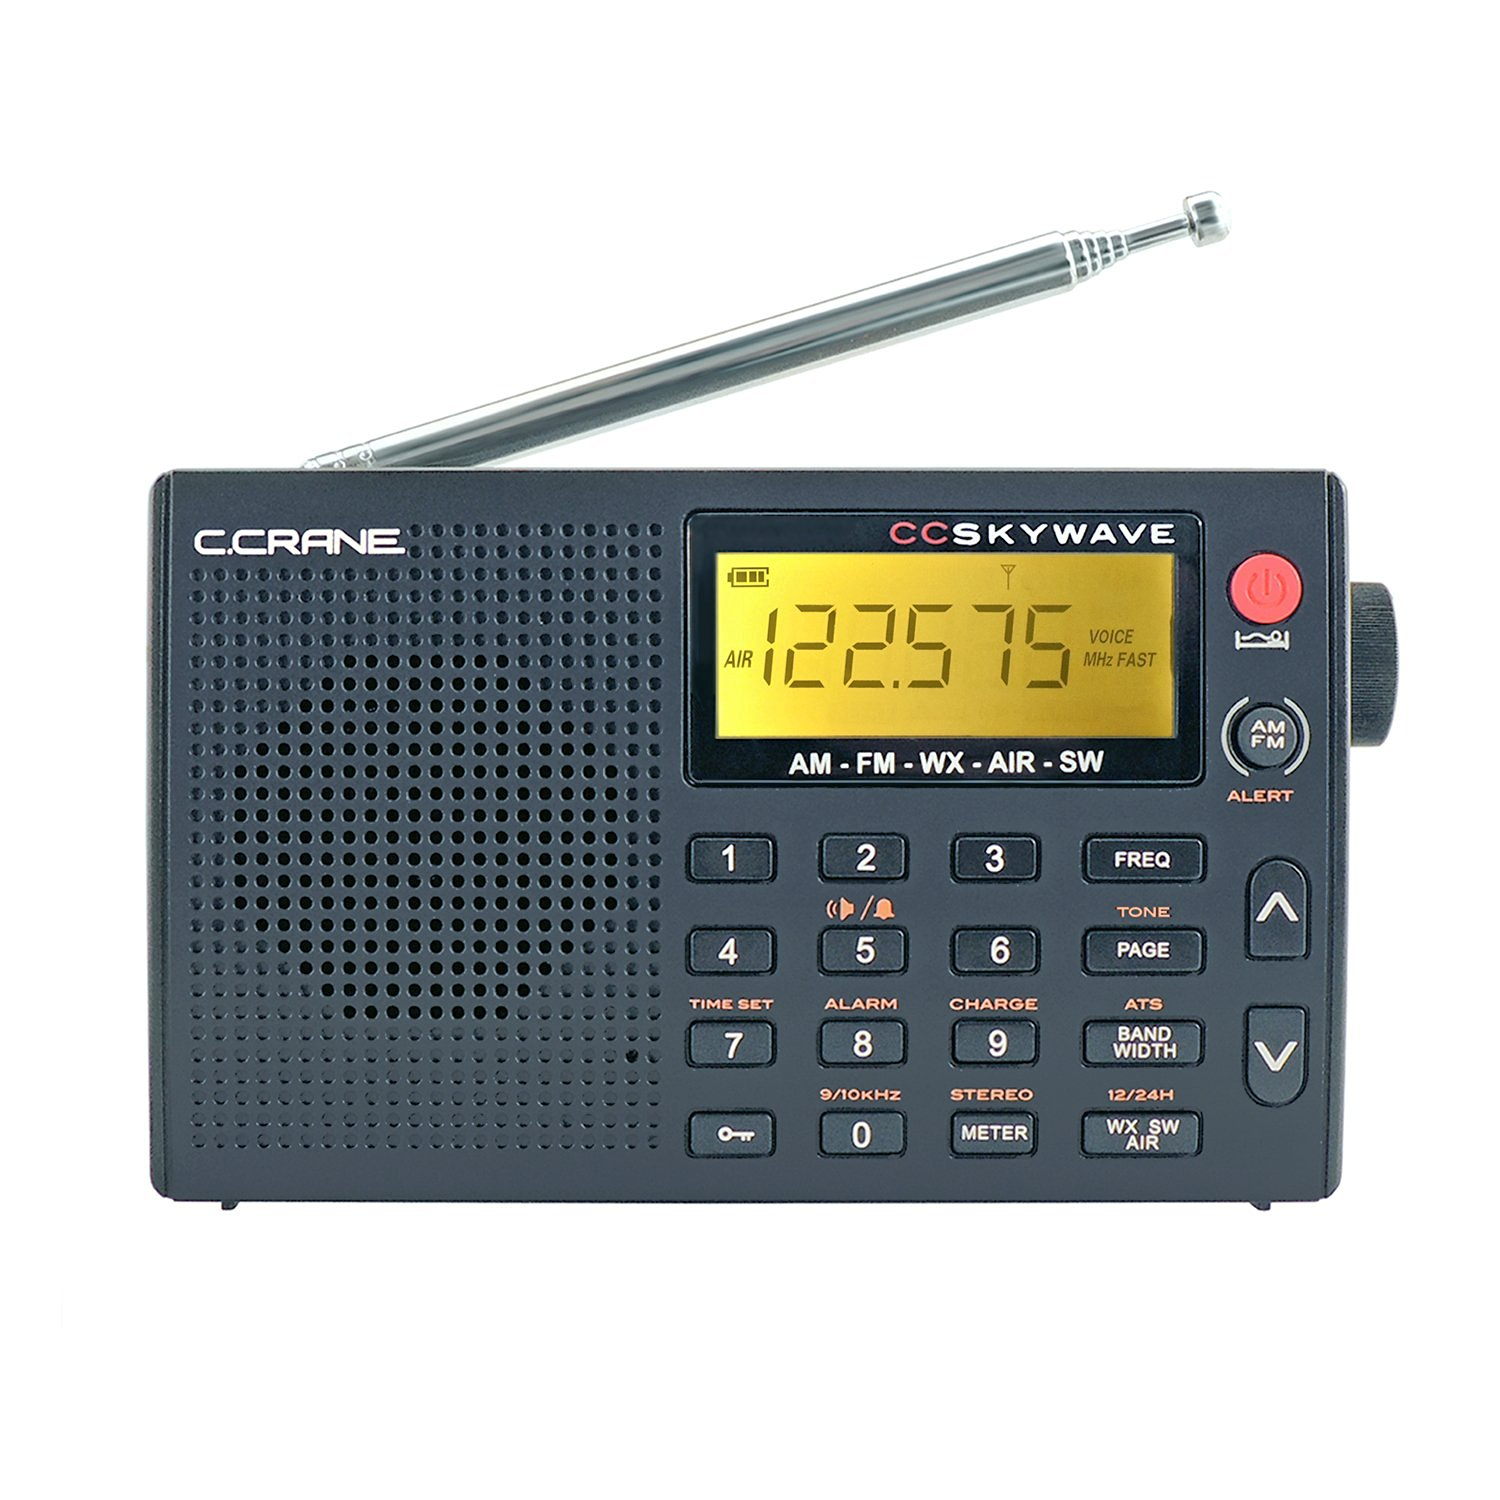 C Crane Skywave Travel Shortwave Radio